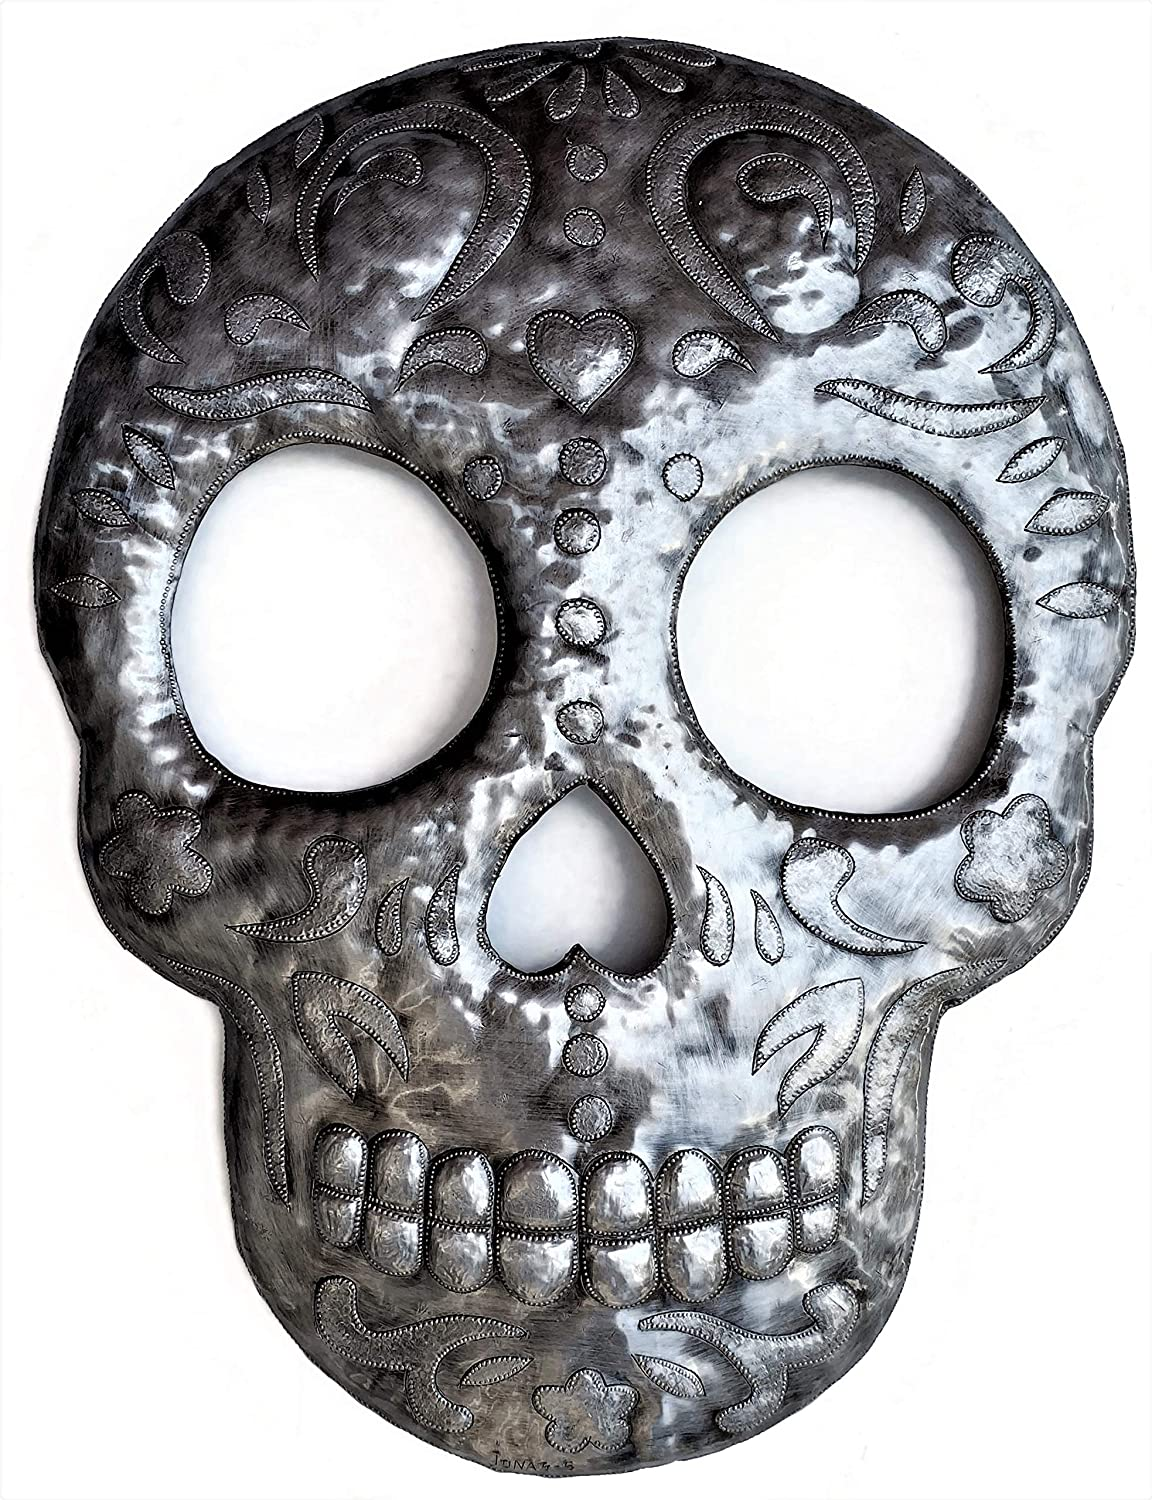 Large Sugar Skull Metal Wall Hanging, Day of Dead Decor, Skeleton Indoor Outdoor Halloween Decoration, Handmade in Haiti from Recycled Steel Barrels 17.5 x 23 Inches